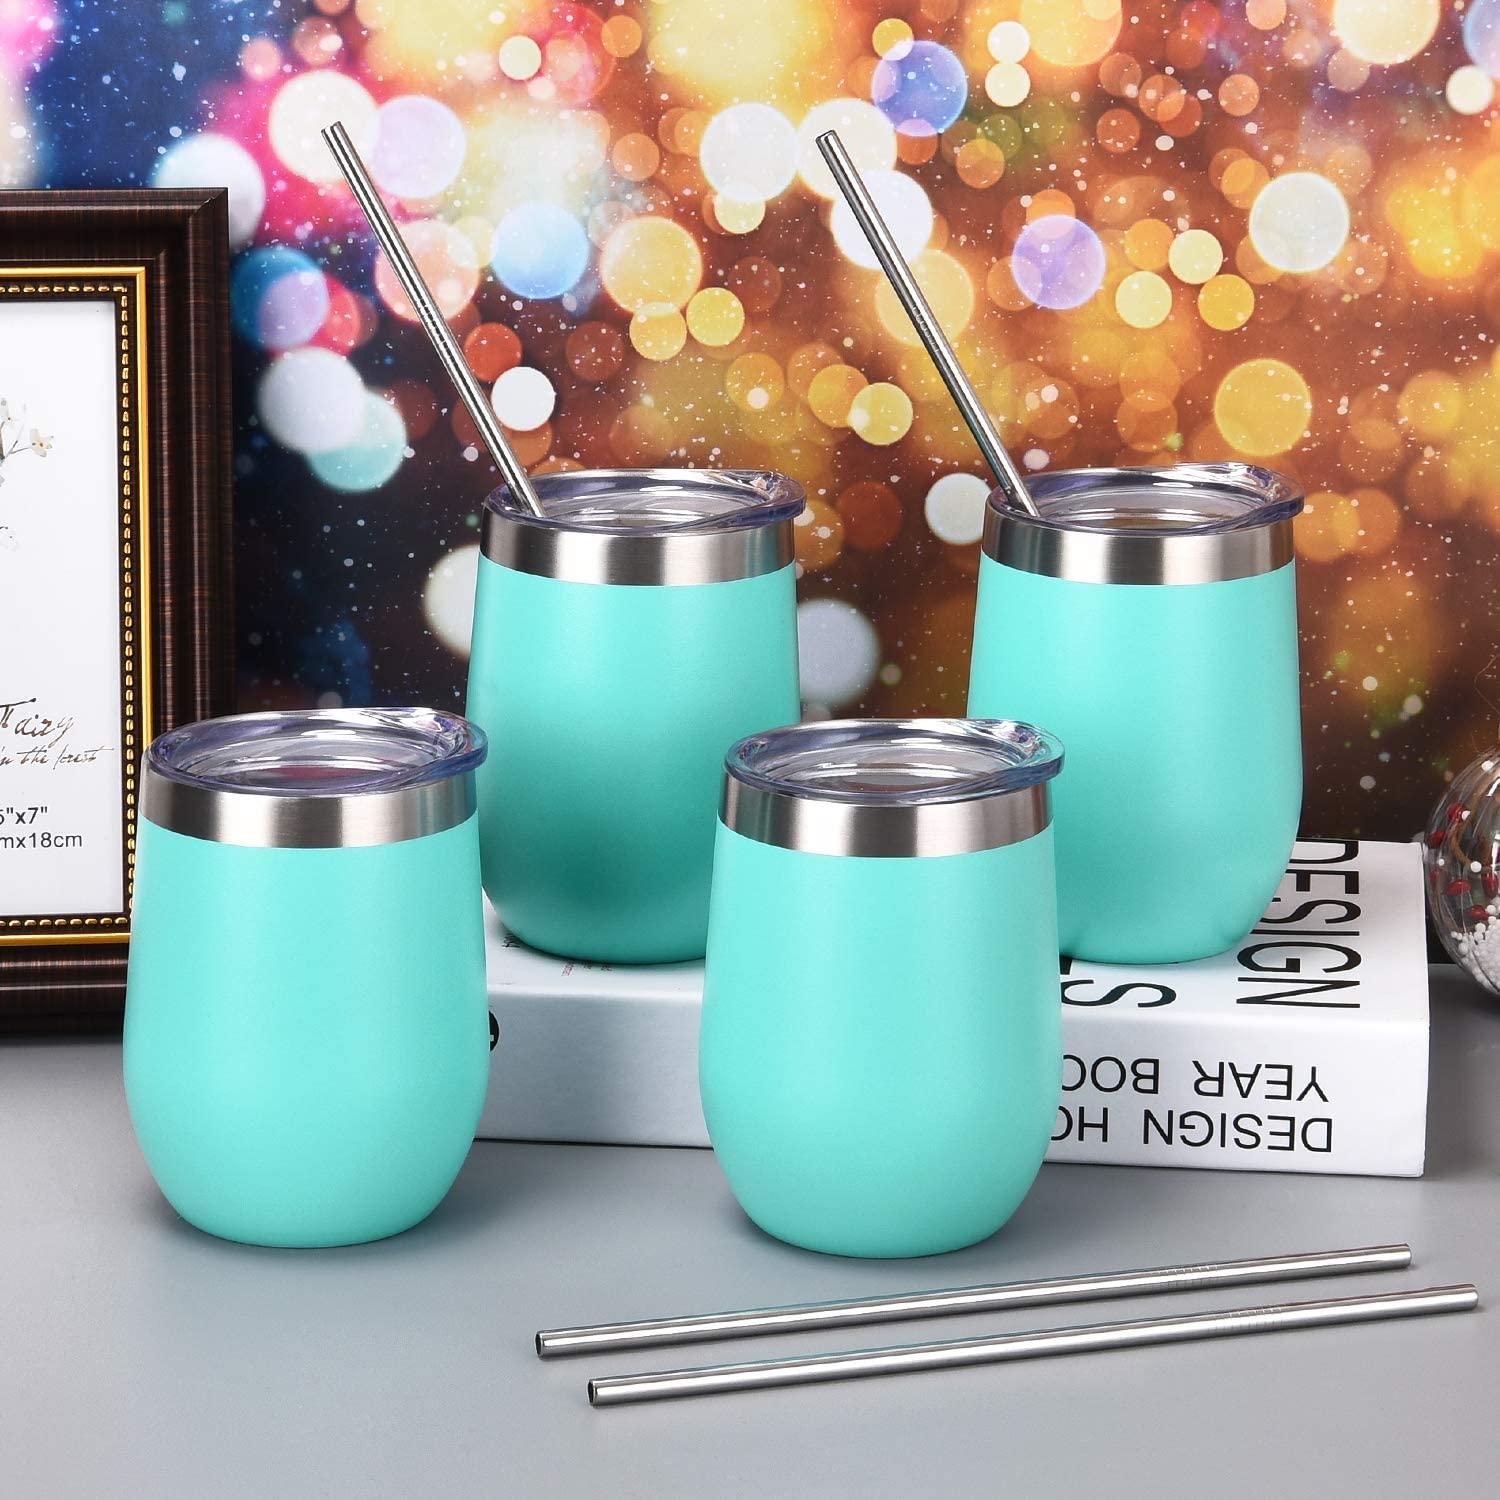 4 Pack 12Oz Stemless Wine Tumbler Wine Glasses Set Stainless Steel Wine Tumbler Cups with Lid and Straw Set of 4 Shatterproof - Novelty Gifts for Men Women or Family Party Use, Blue